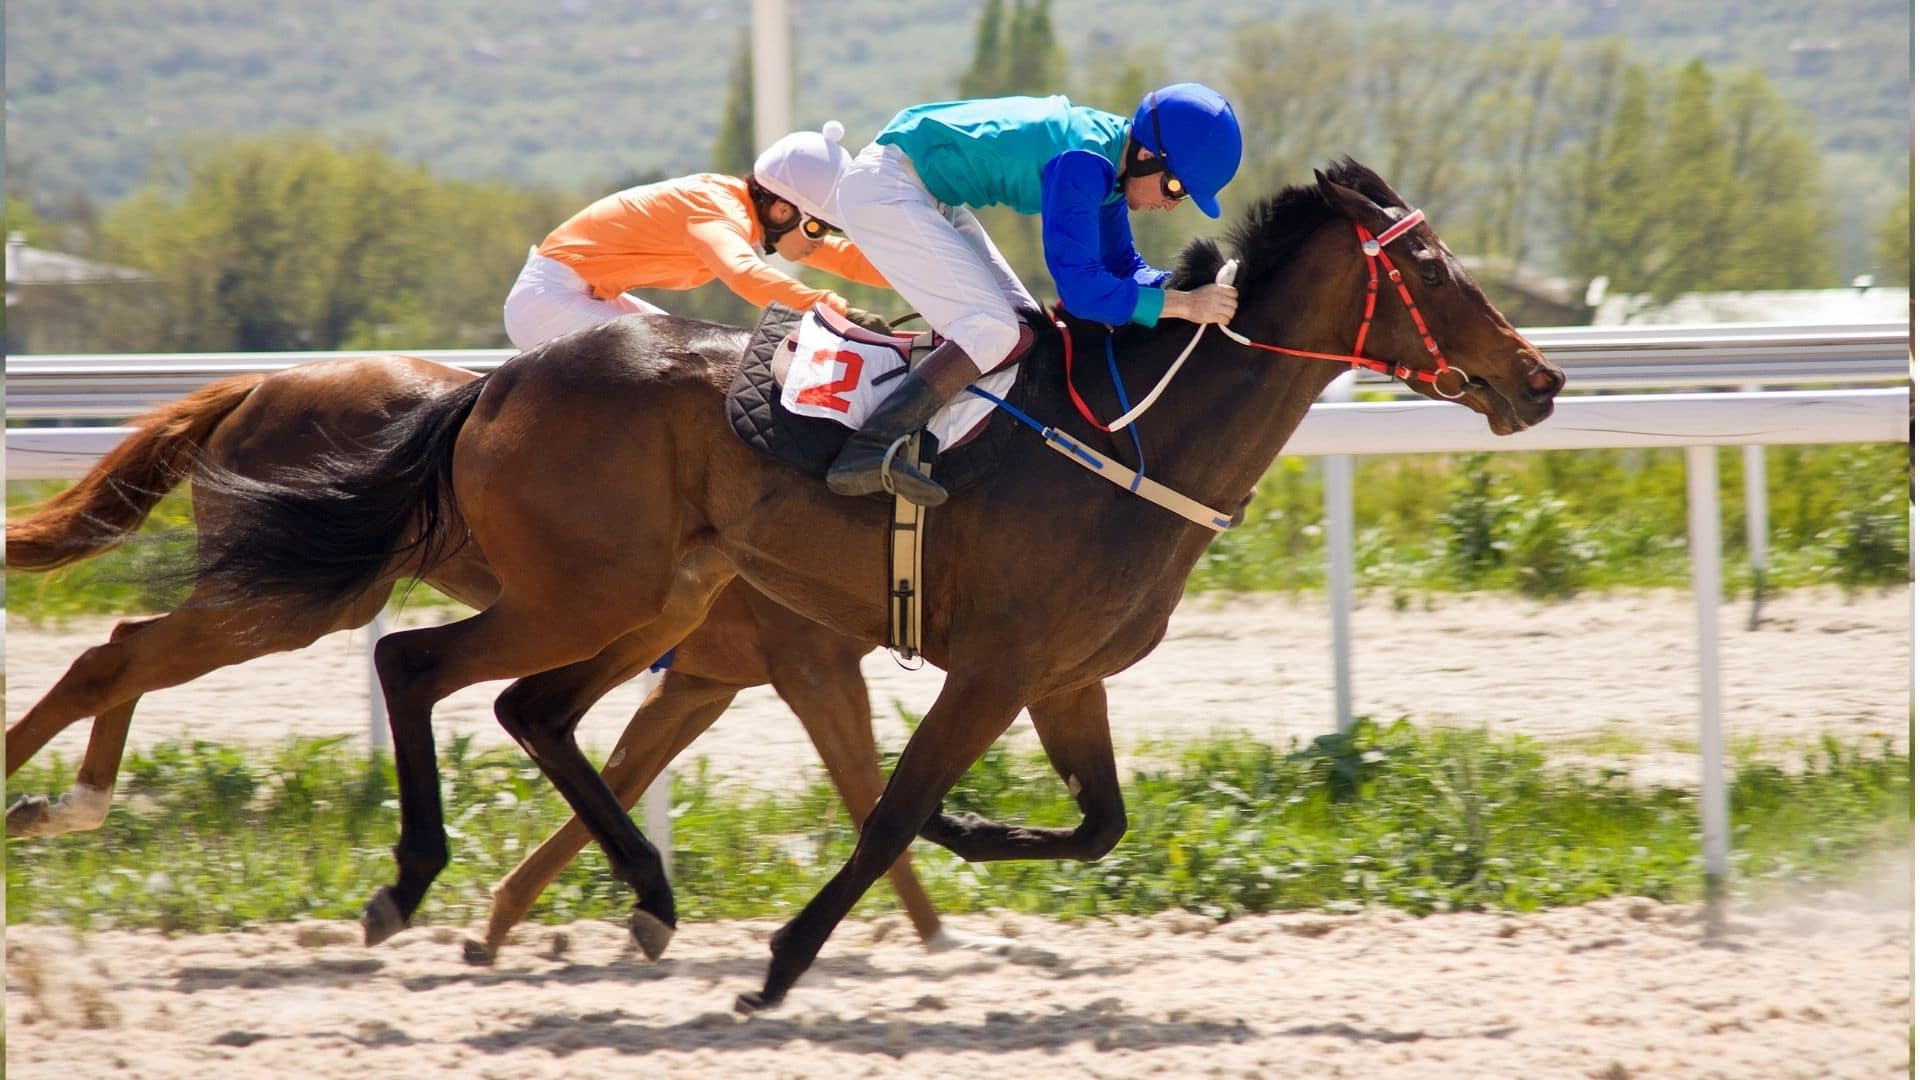 Picture of two racehorses racing down a dirt track.